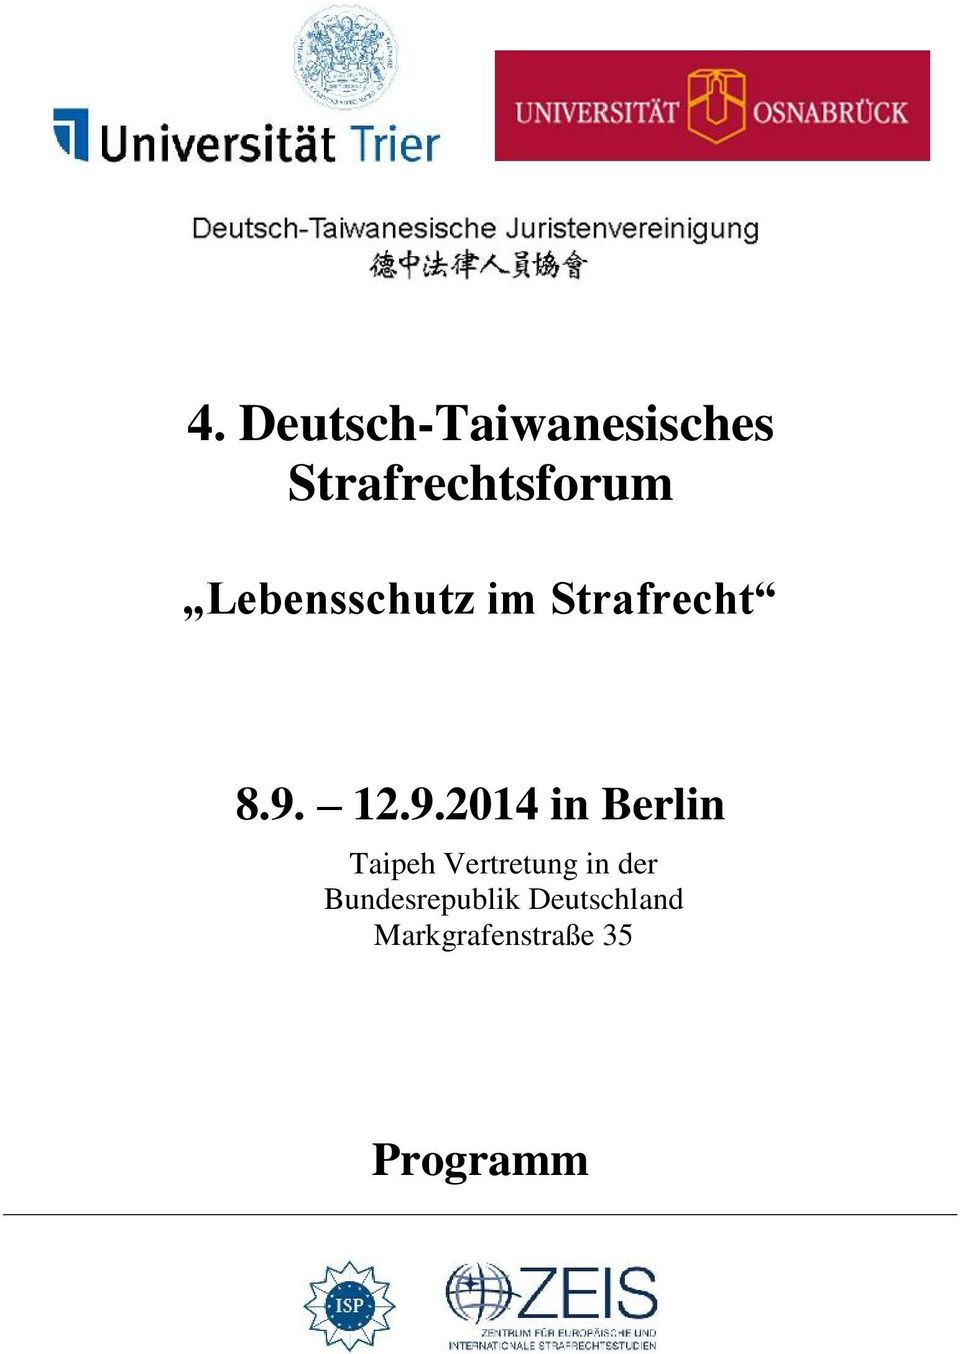 12.9.2014 in Berlin Taipeh Vertretung in